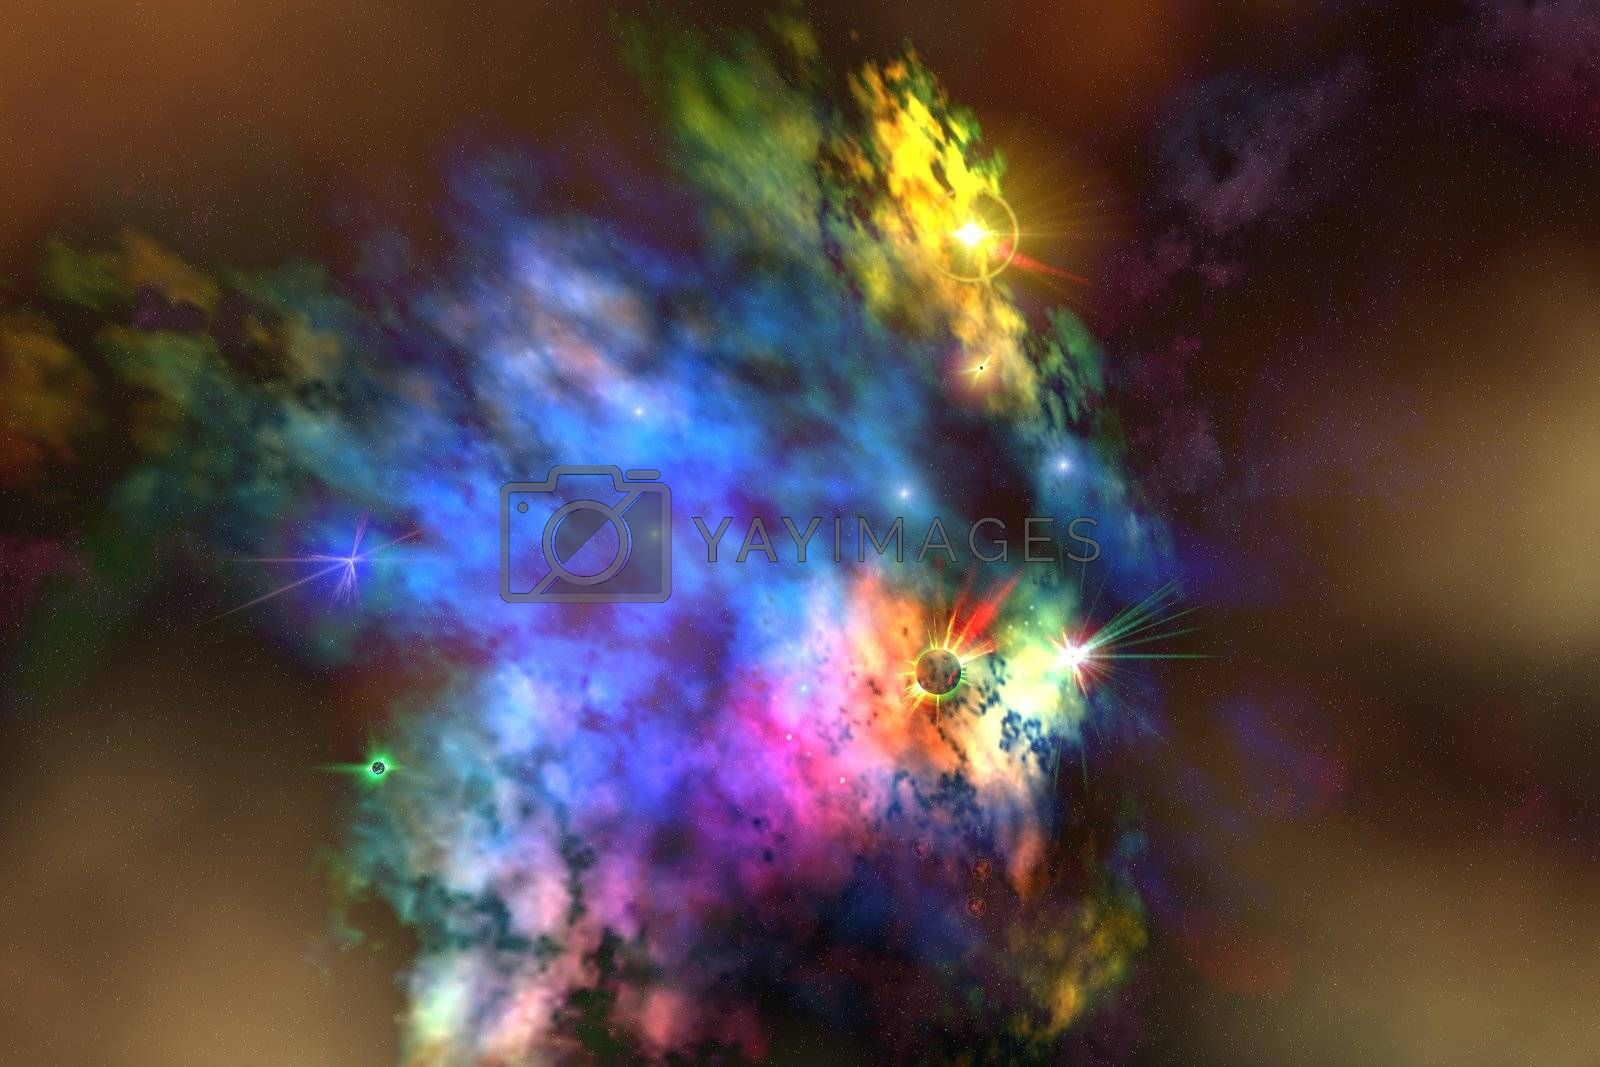 A colorful nebula in the universe.